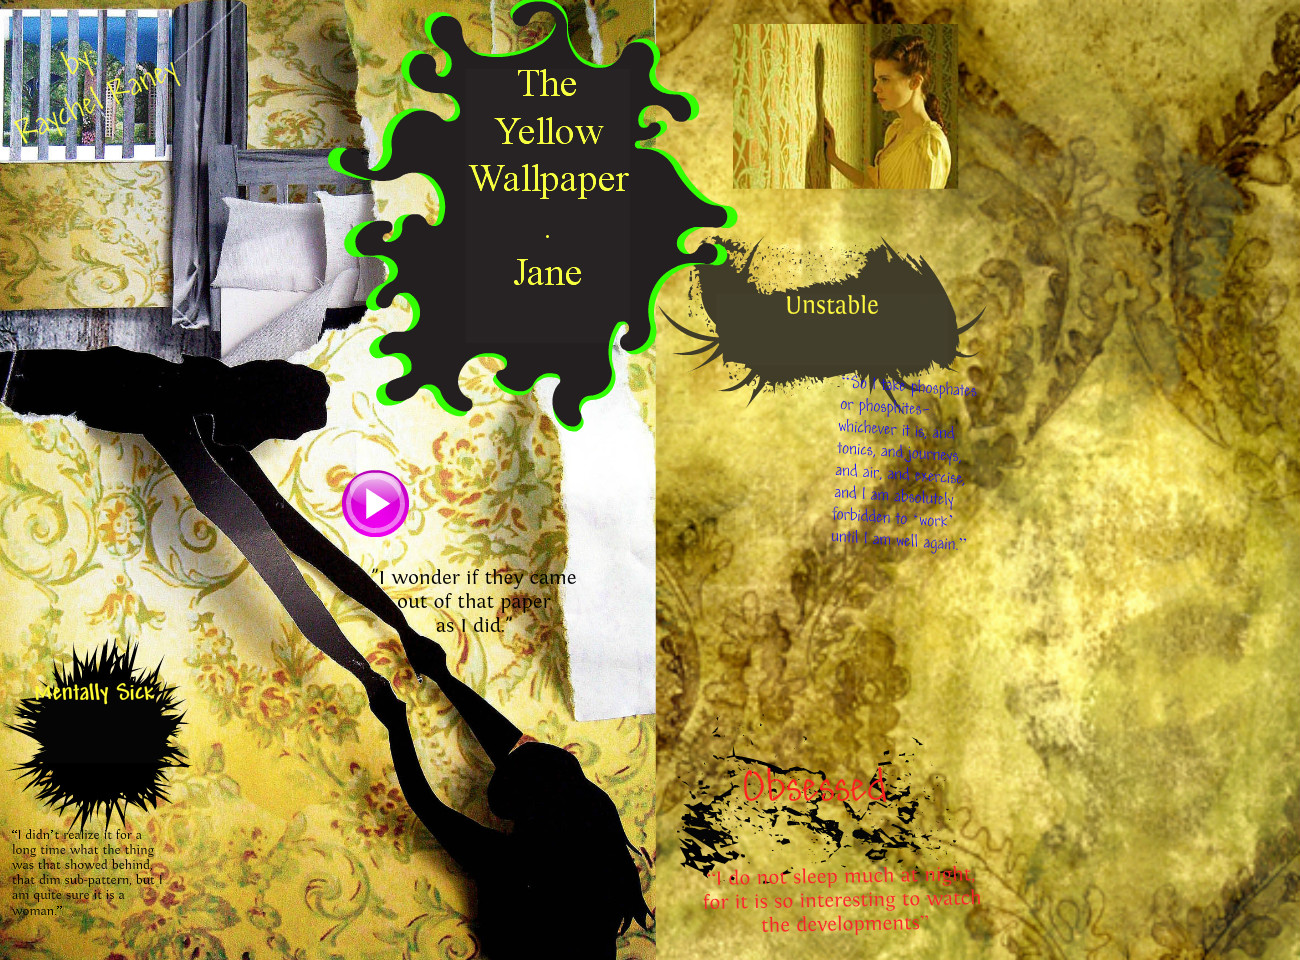 Download The Yellow Wallpaper Full Story Gallery